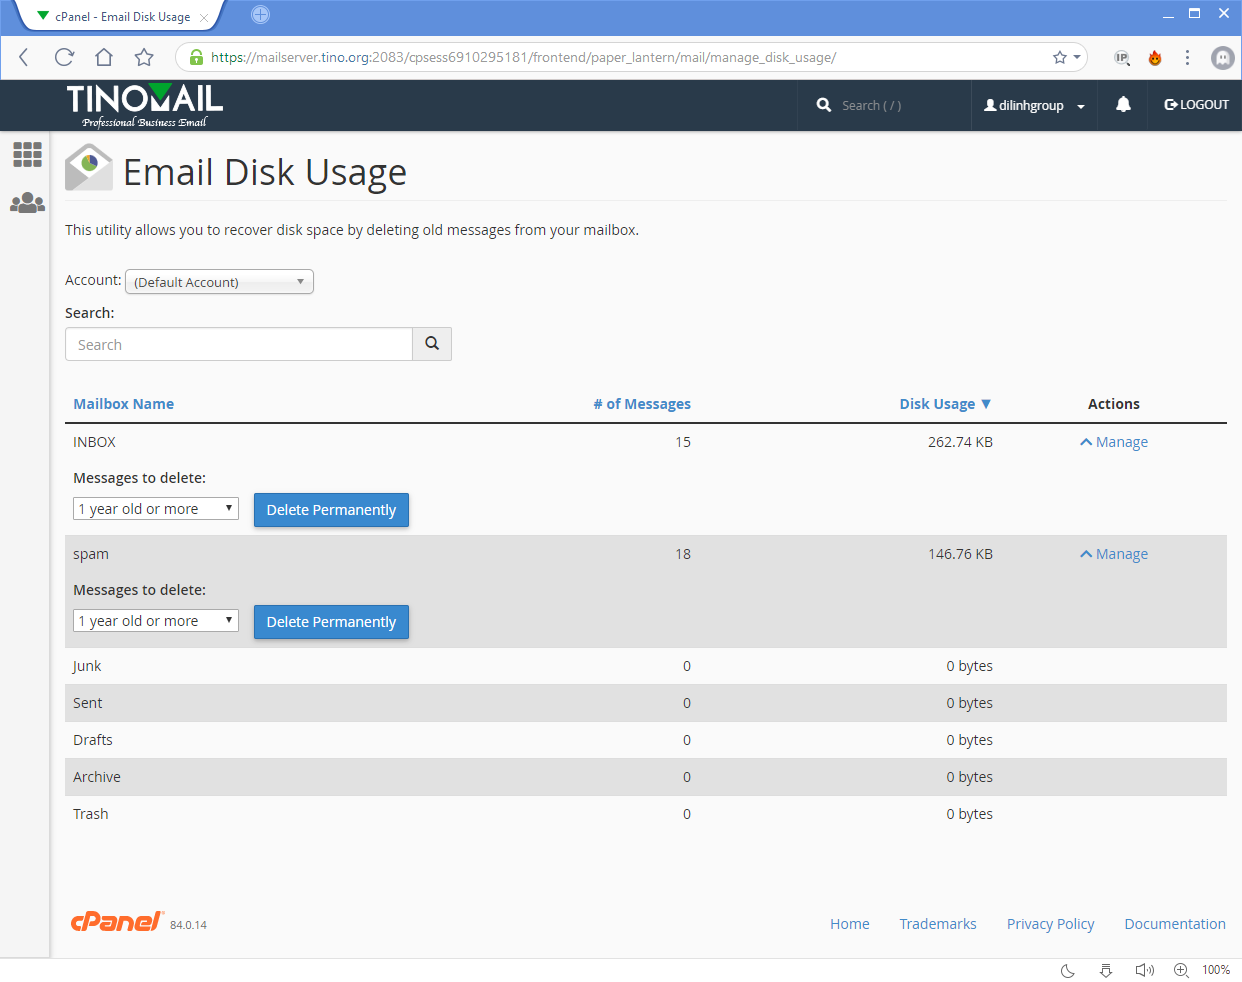 [cPanel] - Email Disk Usage 4